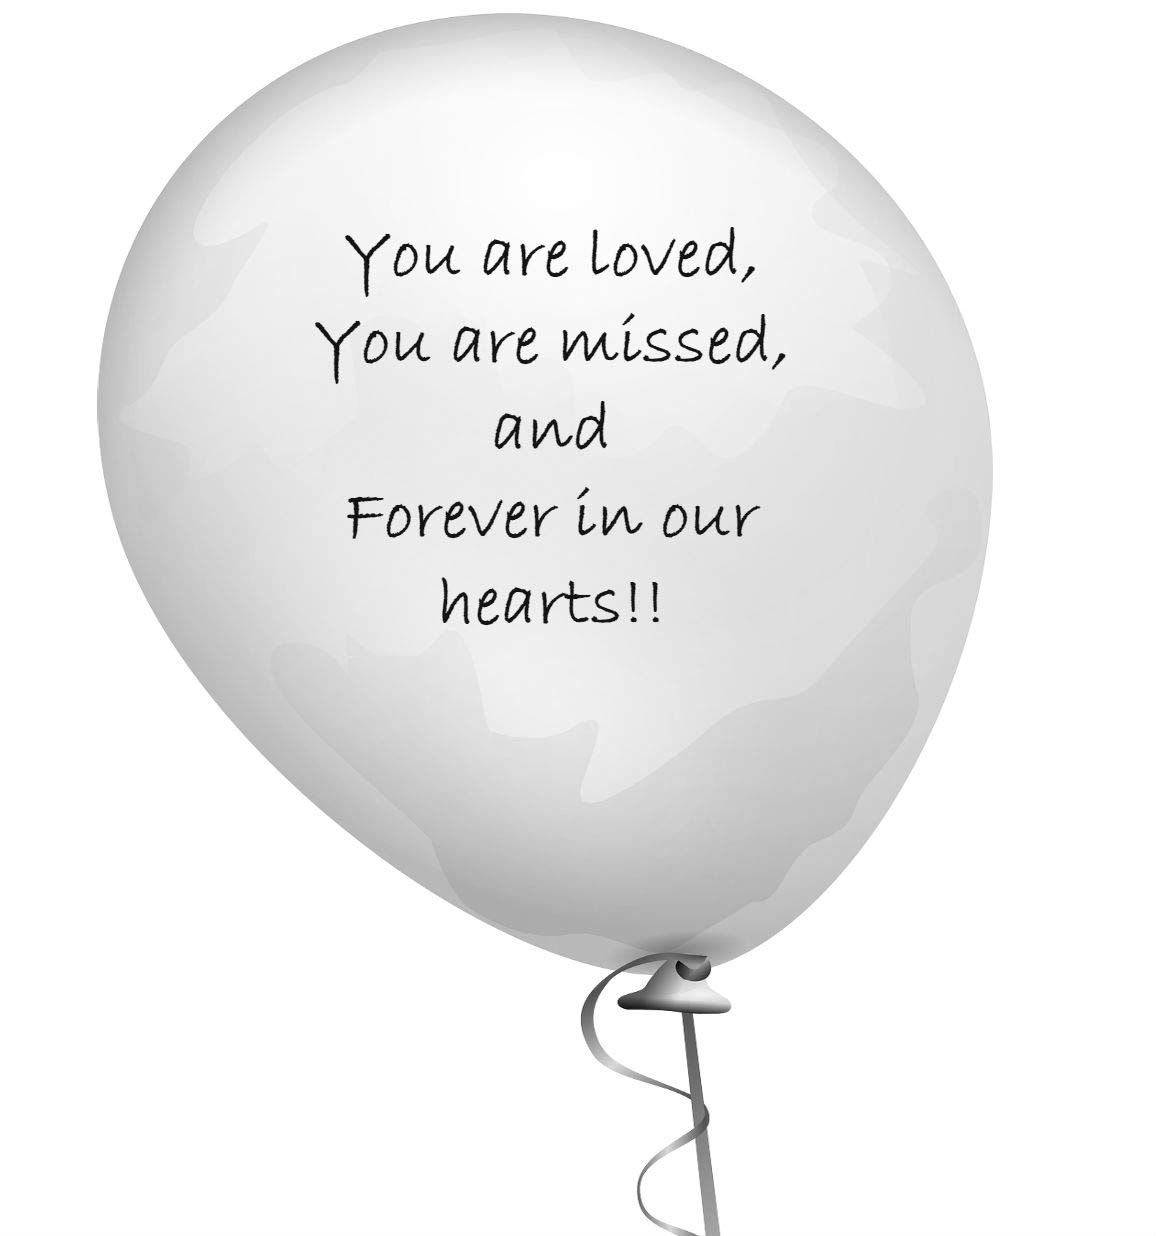 Celebration of life Remembrance Memorial Funeral balloons Sympathy Helium Balloons 3.2 grams High quality 25 pc Elcer